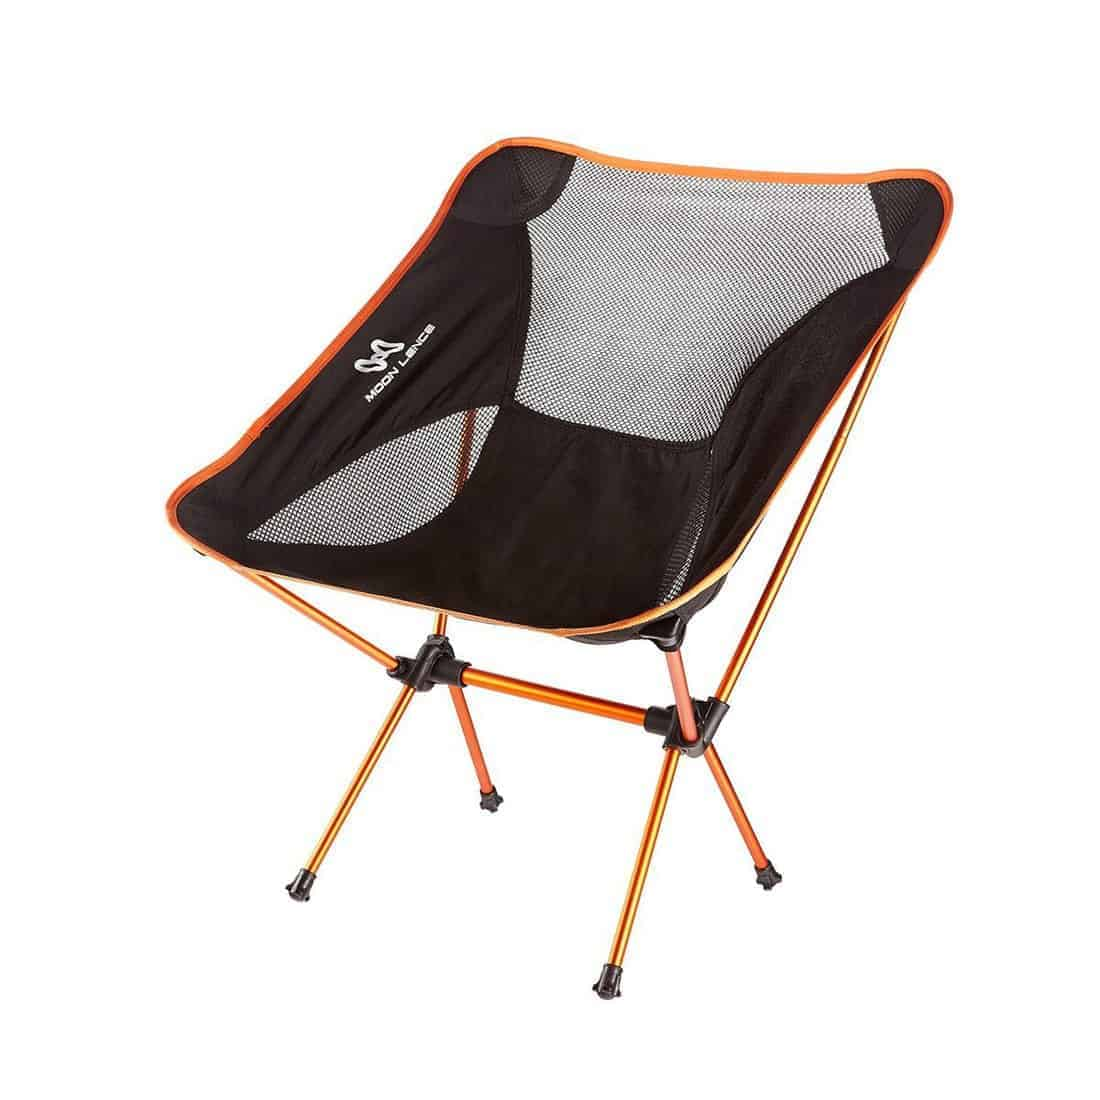 camp chairs rei quick folding chair 10 night photography accessories i couldnt live without